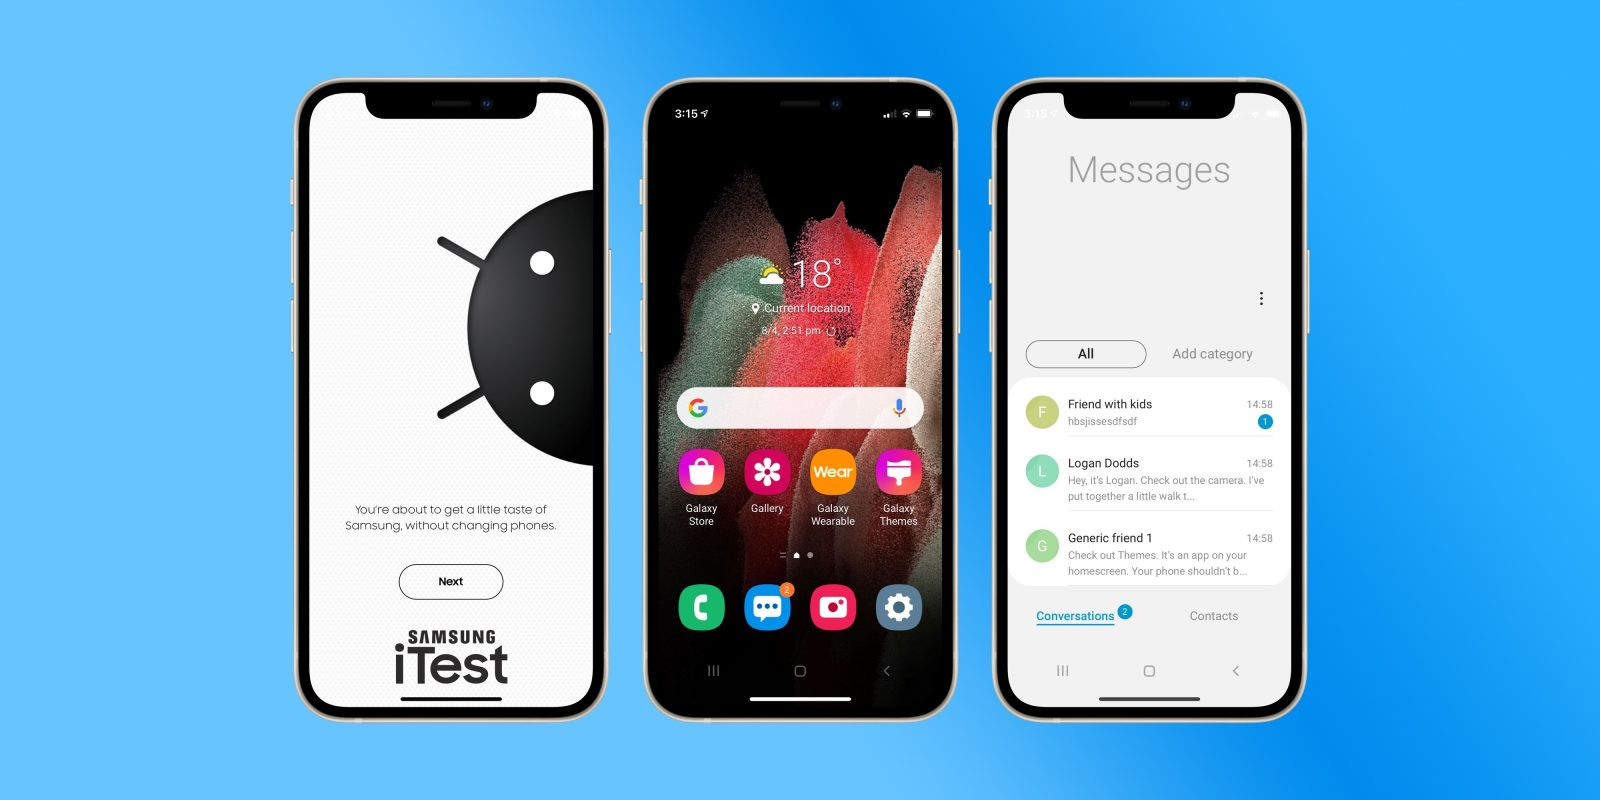 Samsung launches 'iTest,' a new web app for turning your iPhone into a Galaxy device